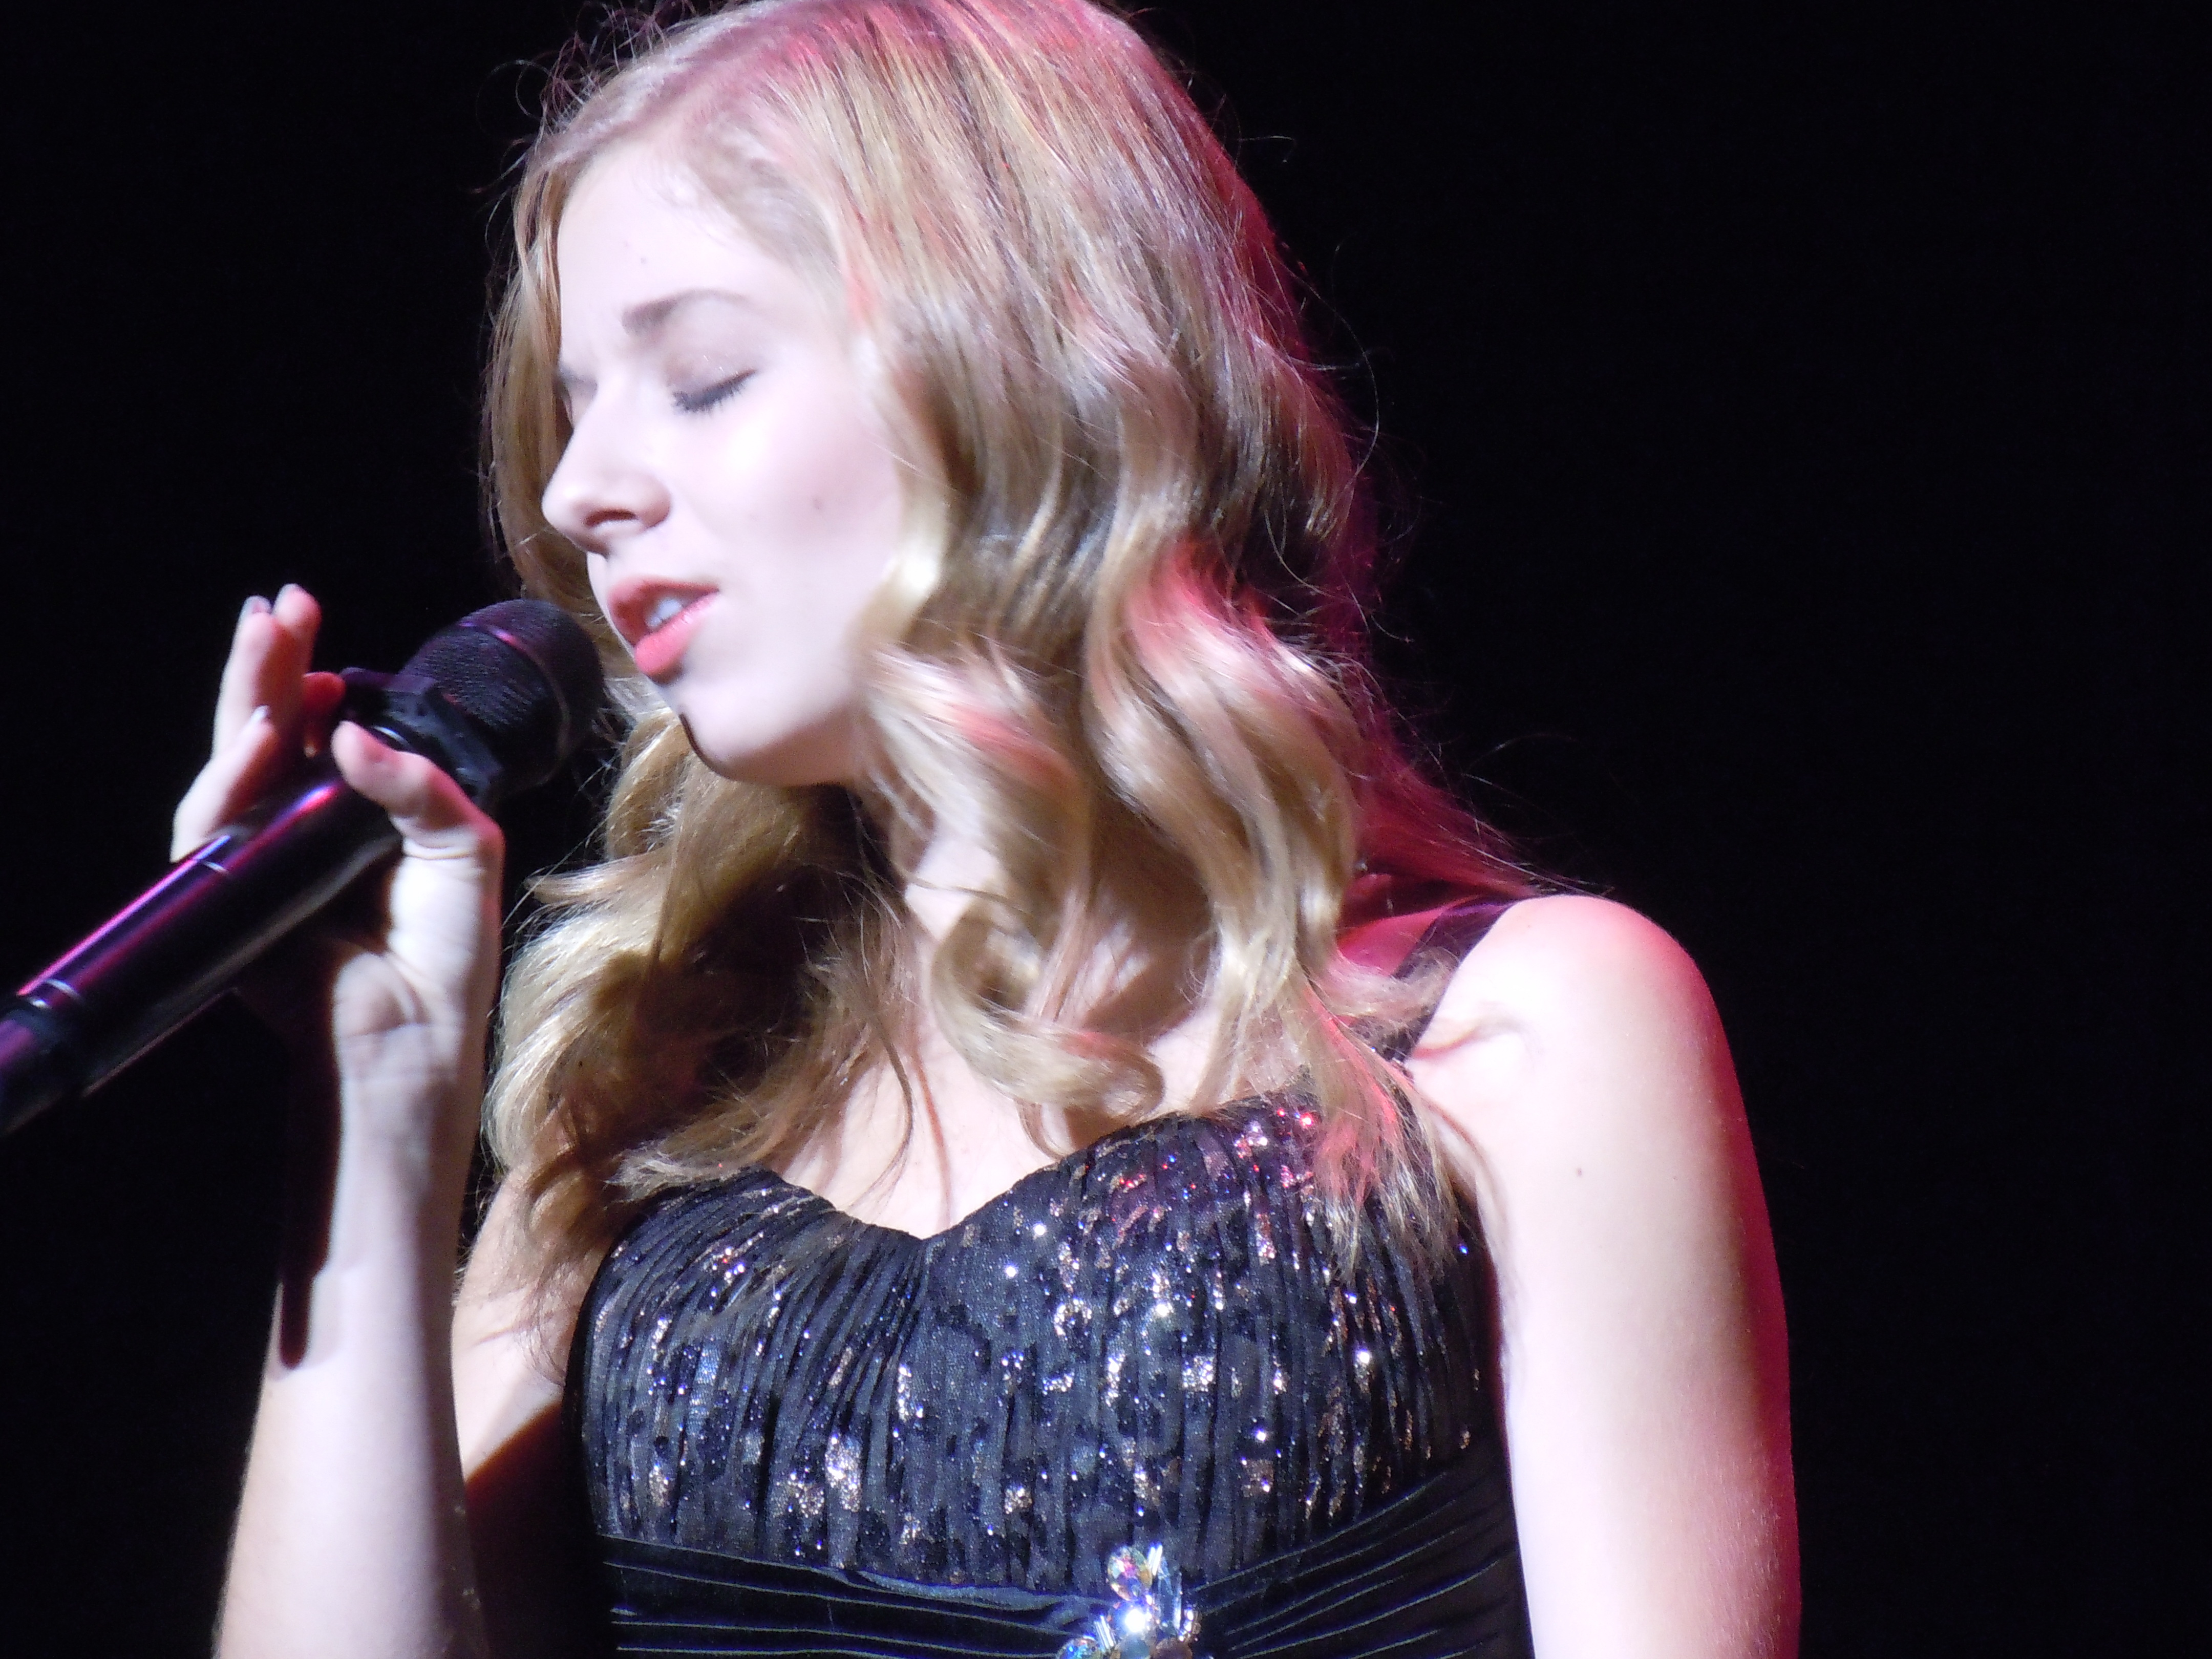 Jackie_Evancho,anni 16